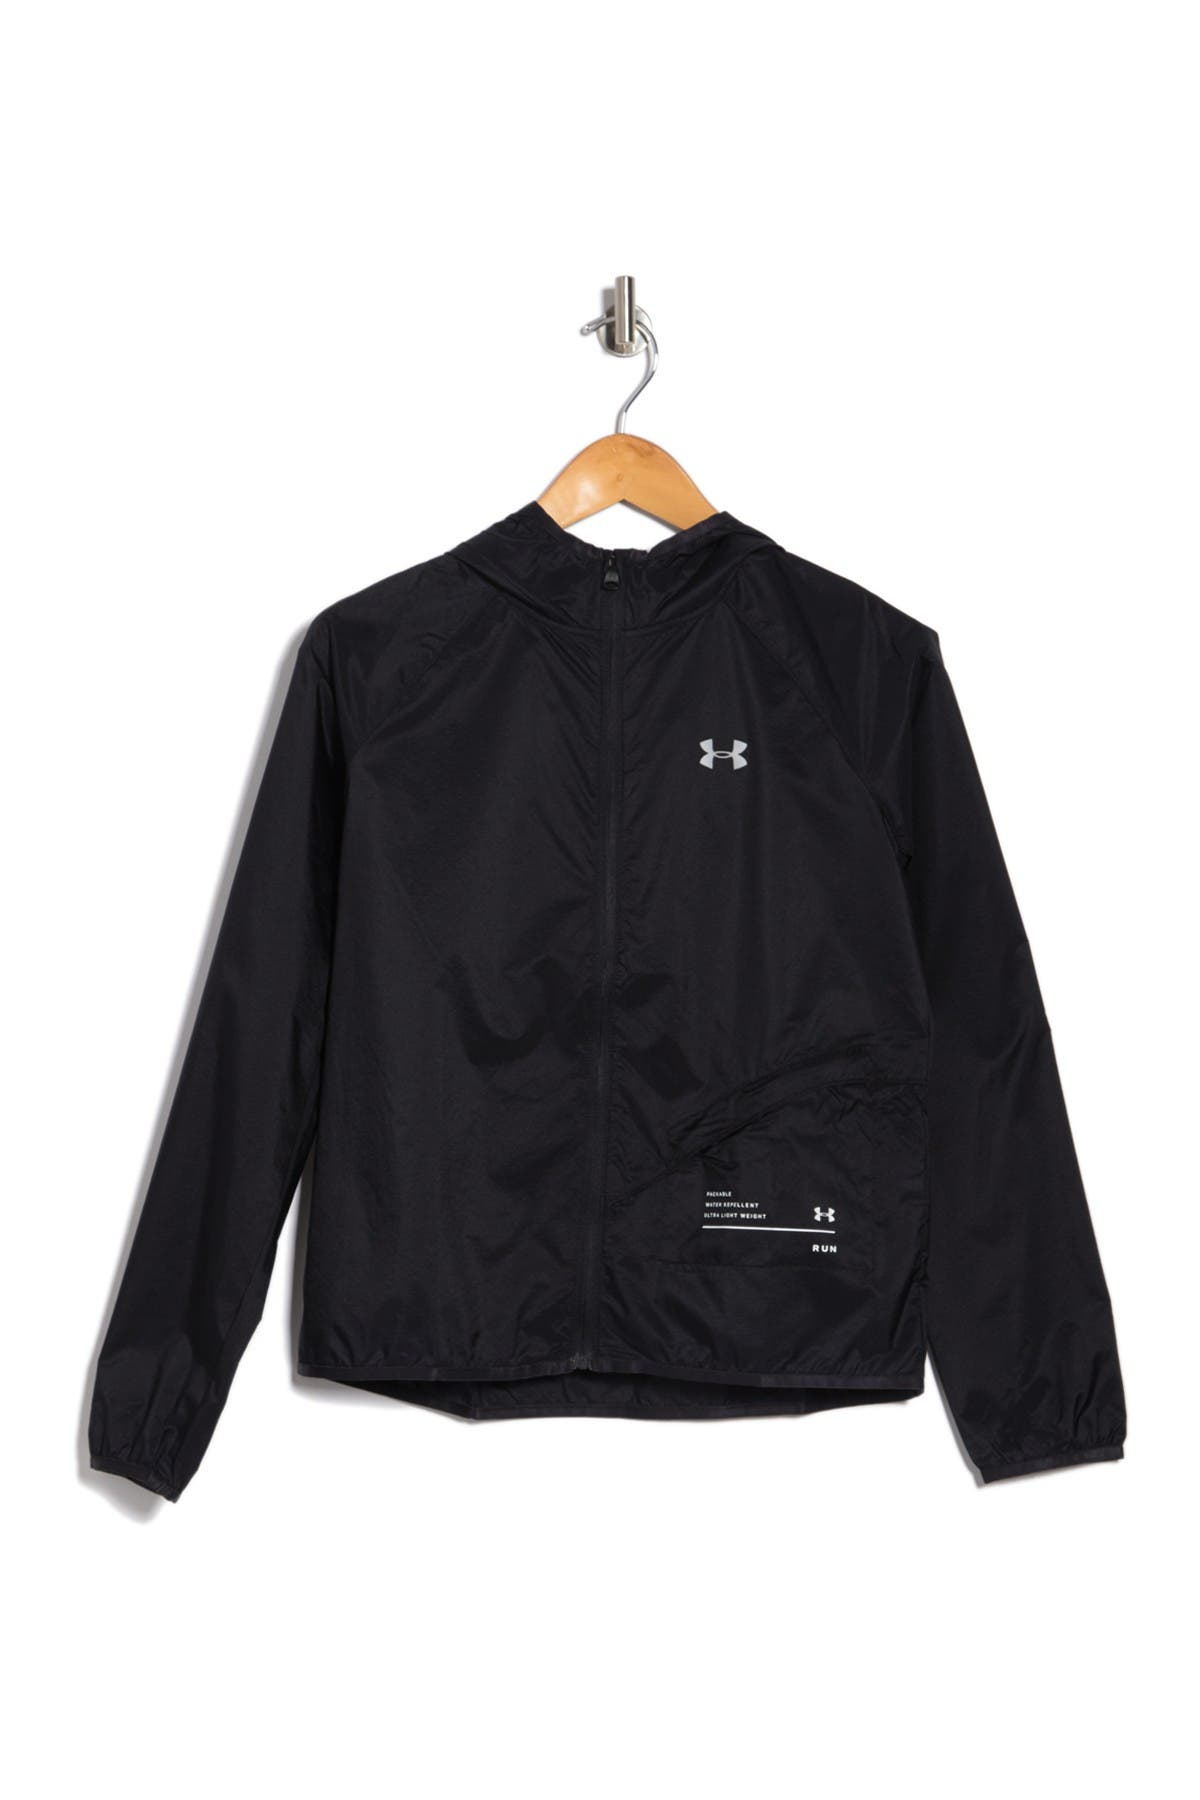 Image of Under Armour Qualifier Storm Packable Jacket